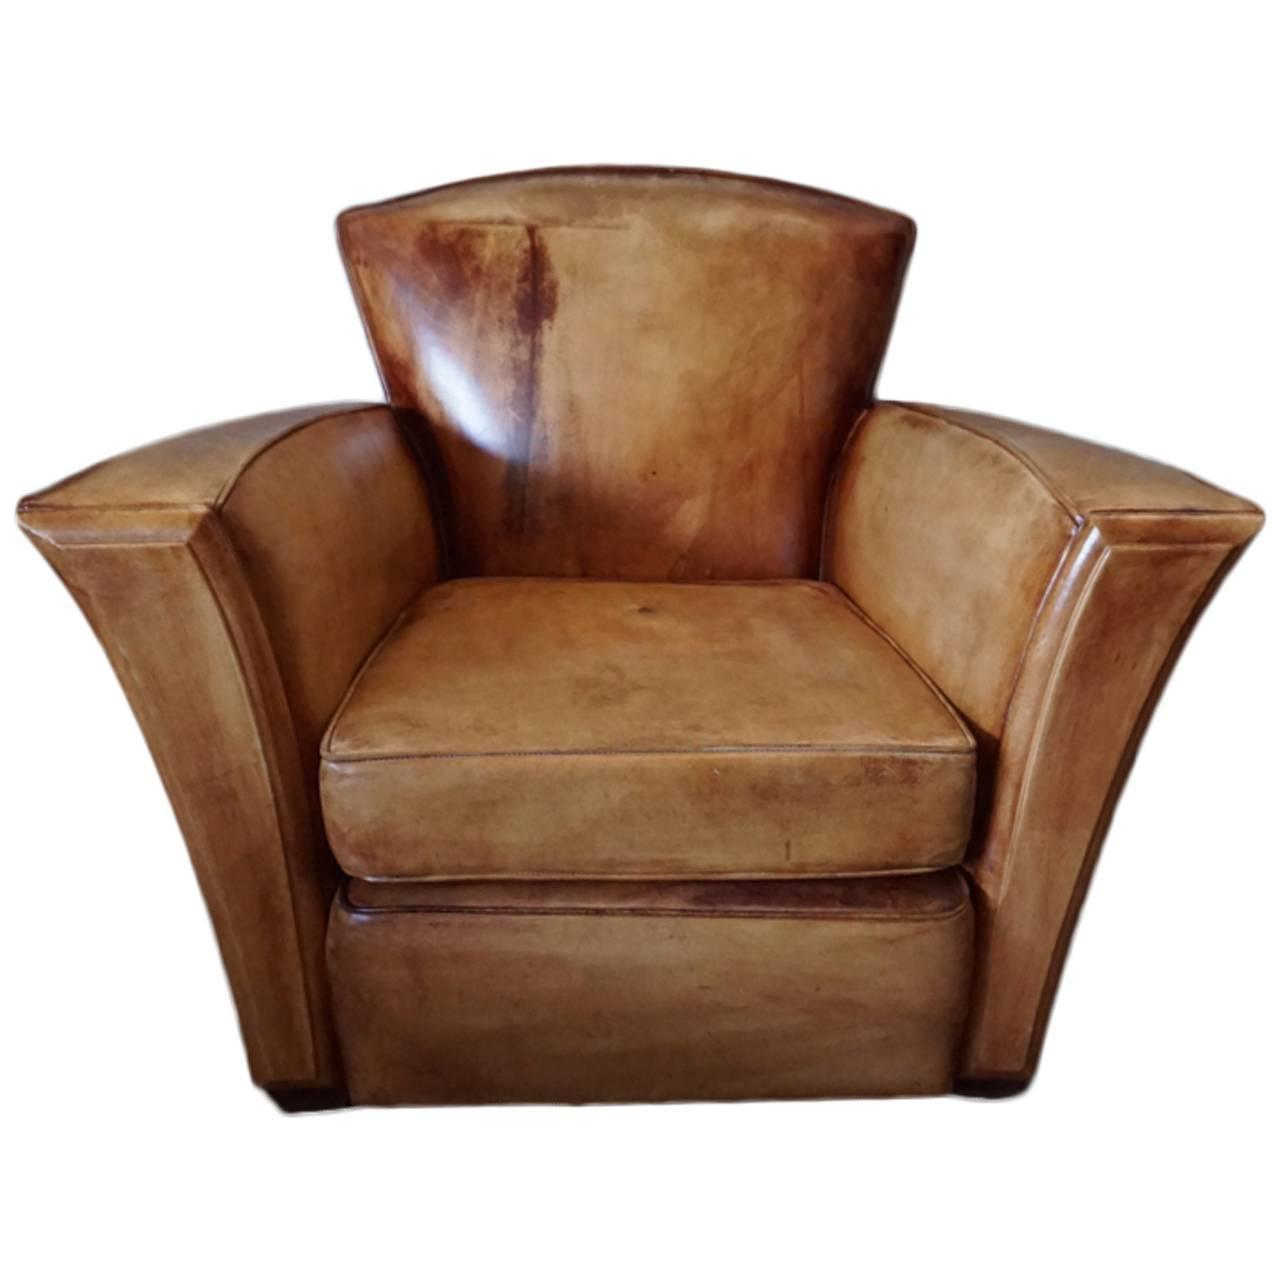 Vintage Cognac Art Deco Style Leather Club Chair At 1stdibs